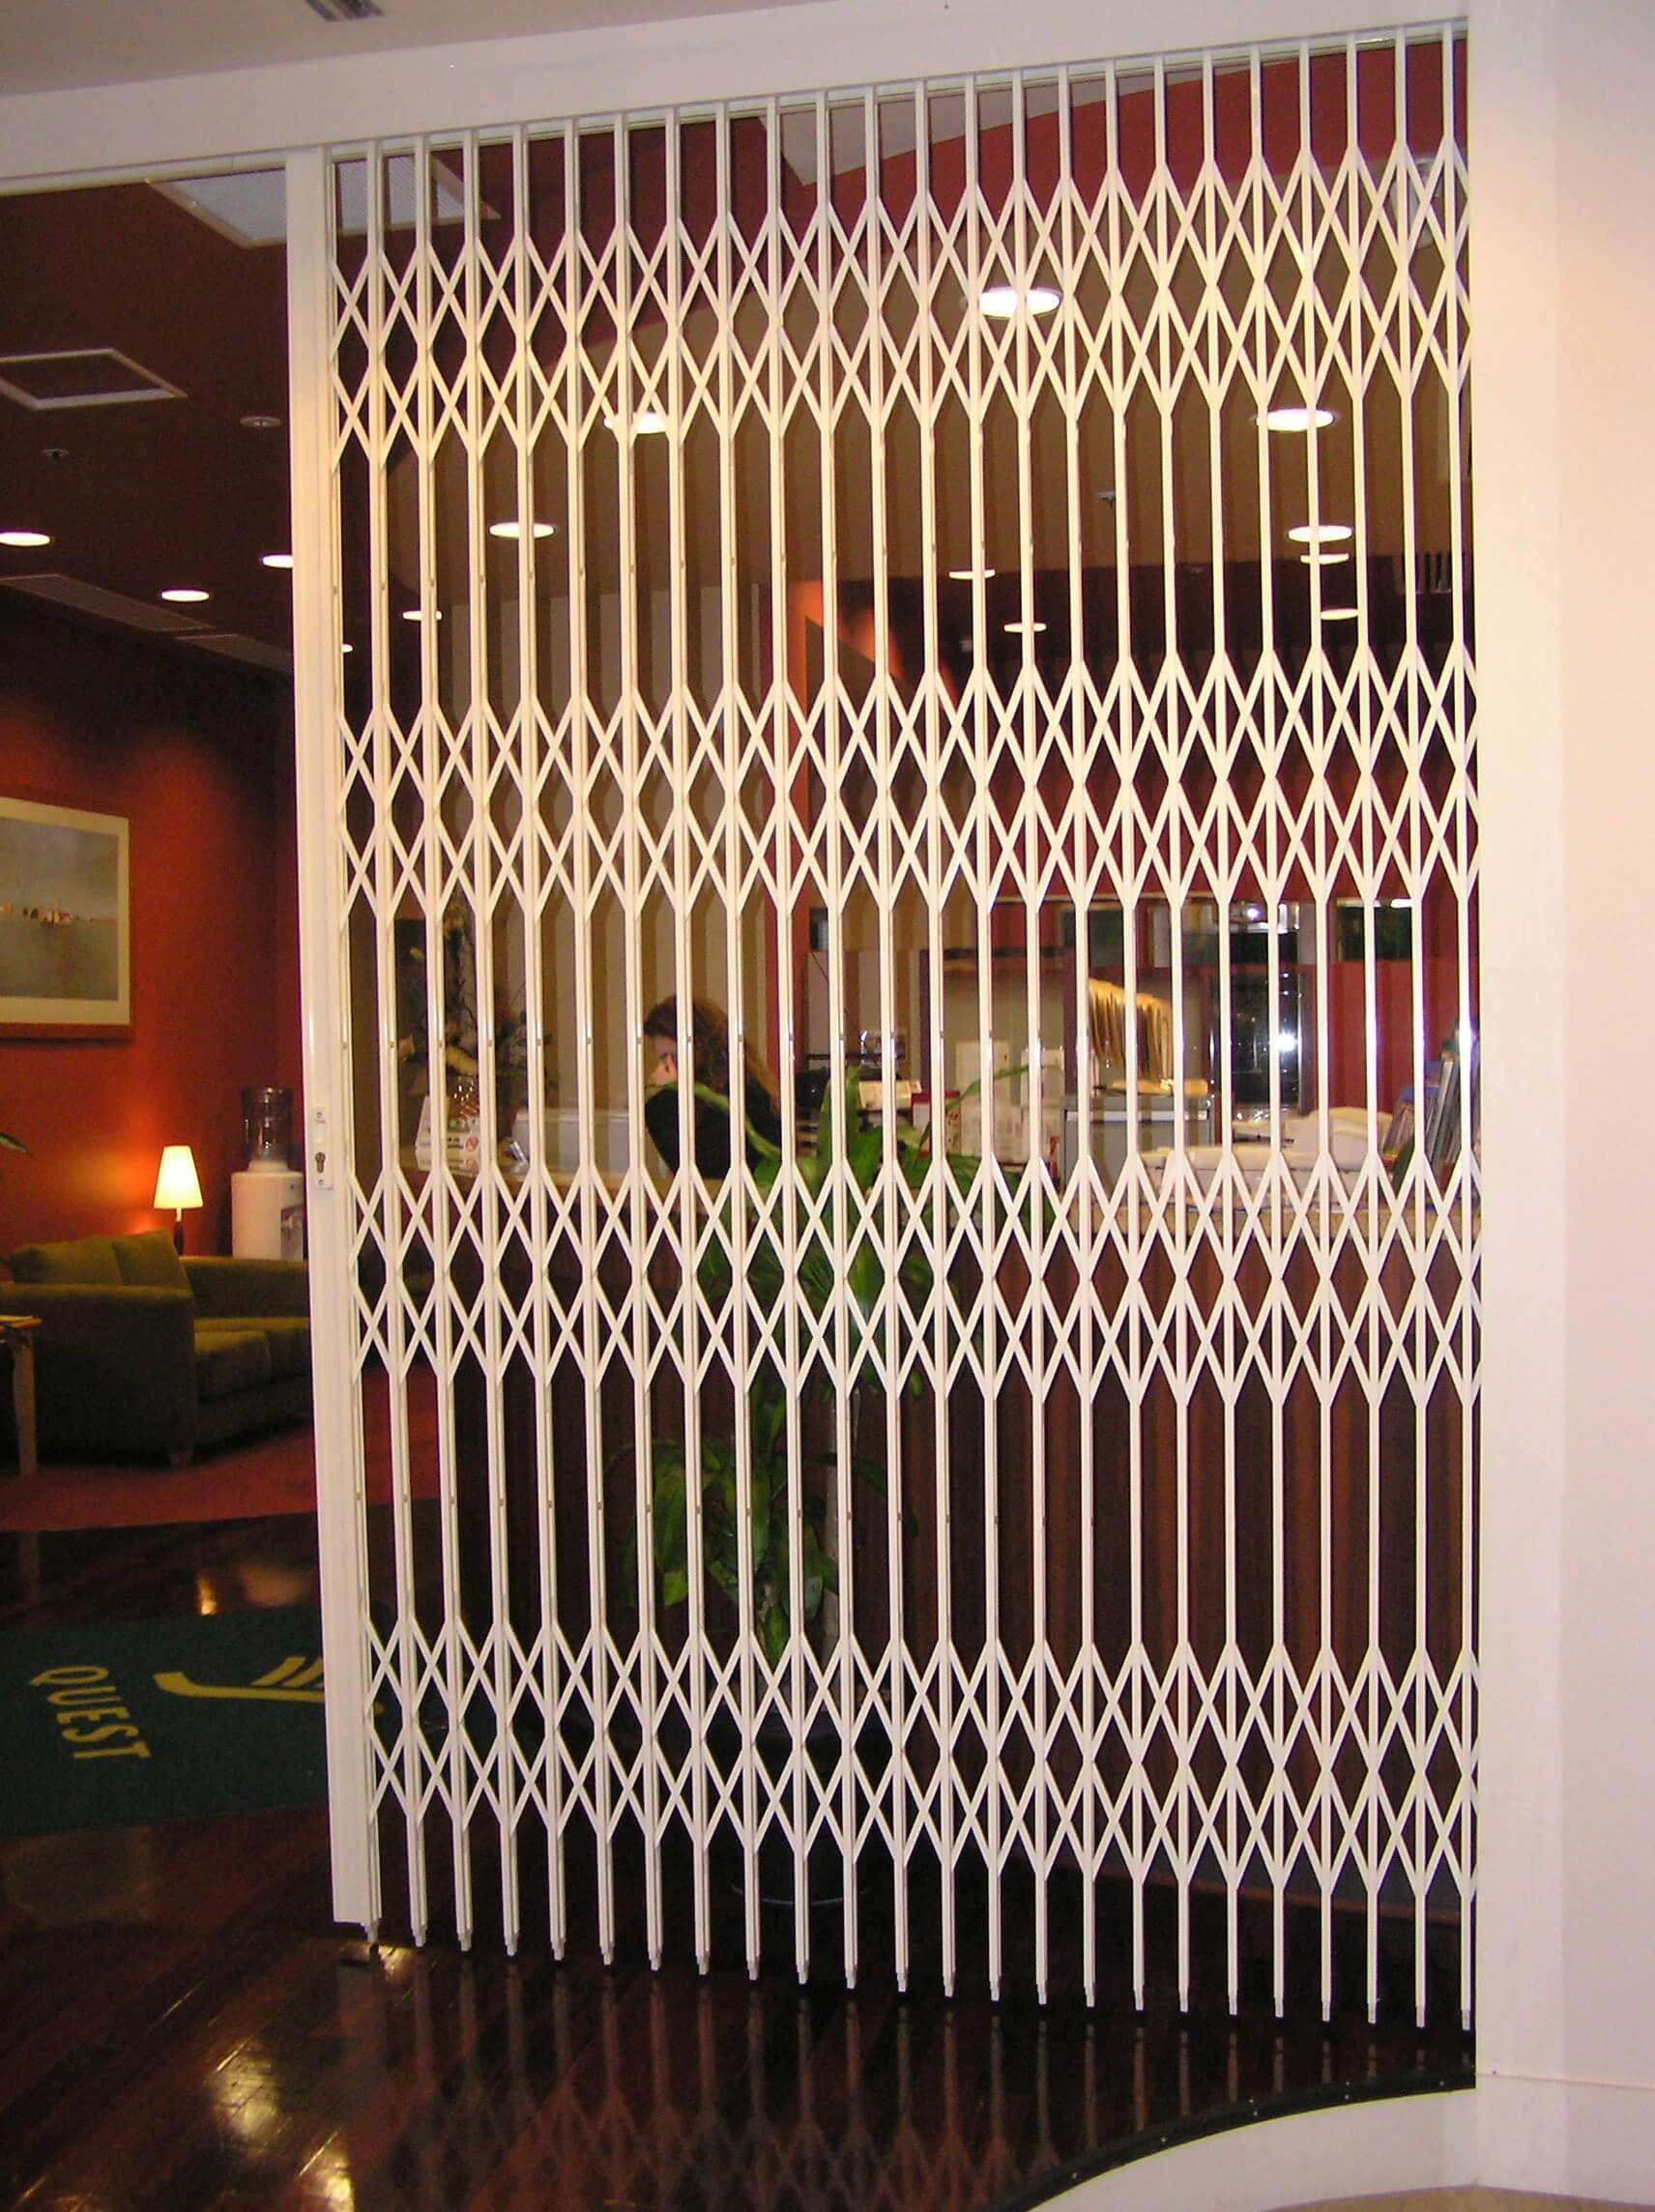 concertina door perth concertina door newcastle concertina door melbourne ... & Concertina Door - S05-1™ Heavy Duty Security Door - Security Doors ...